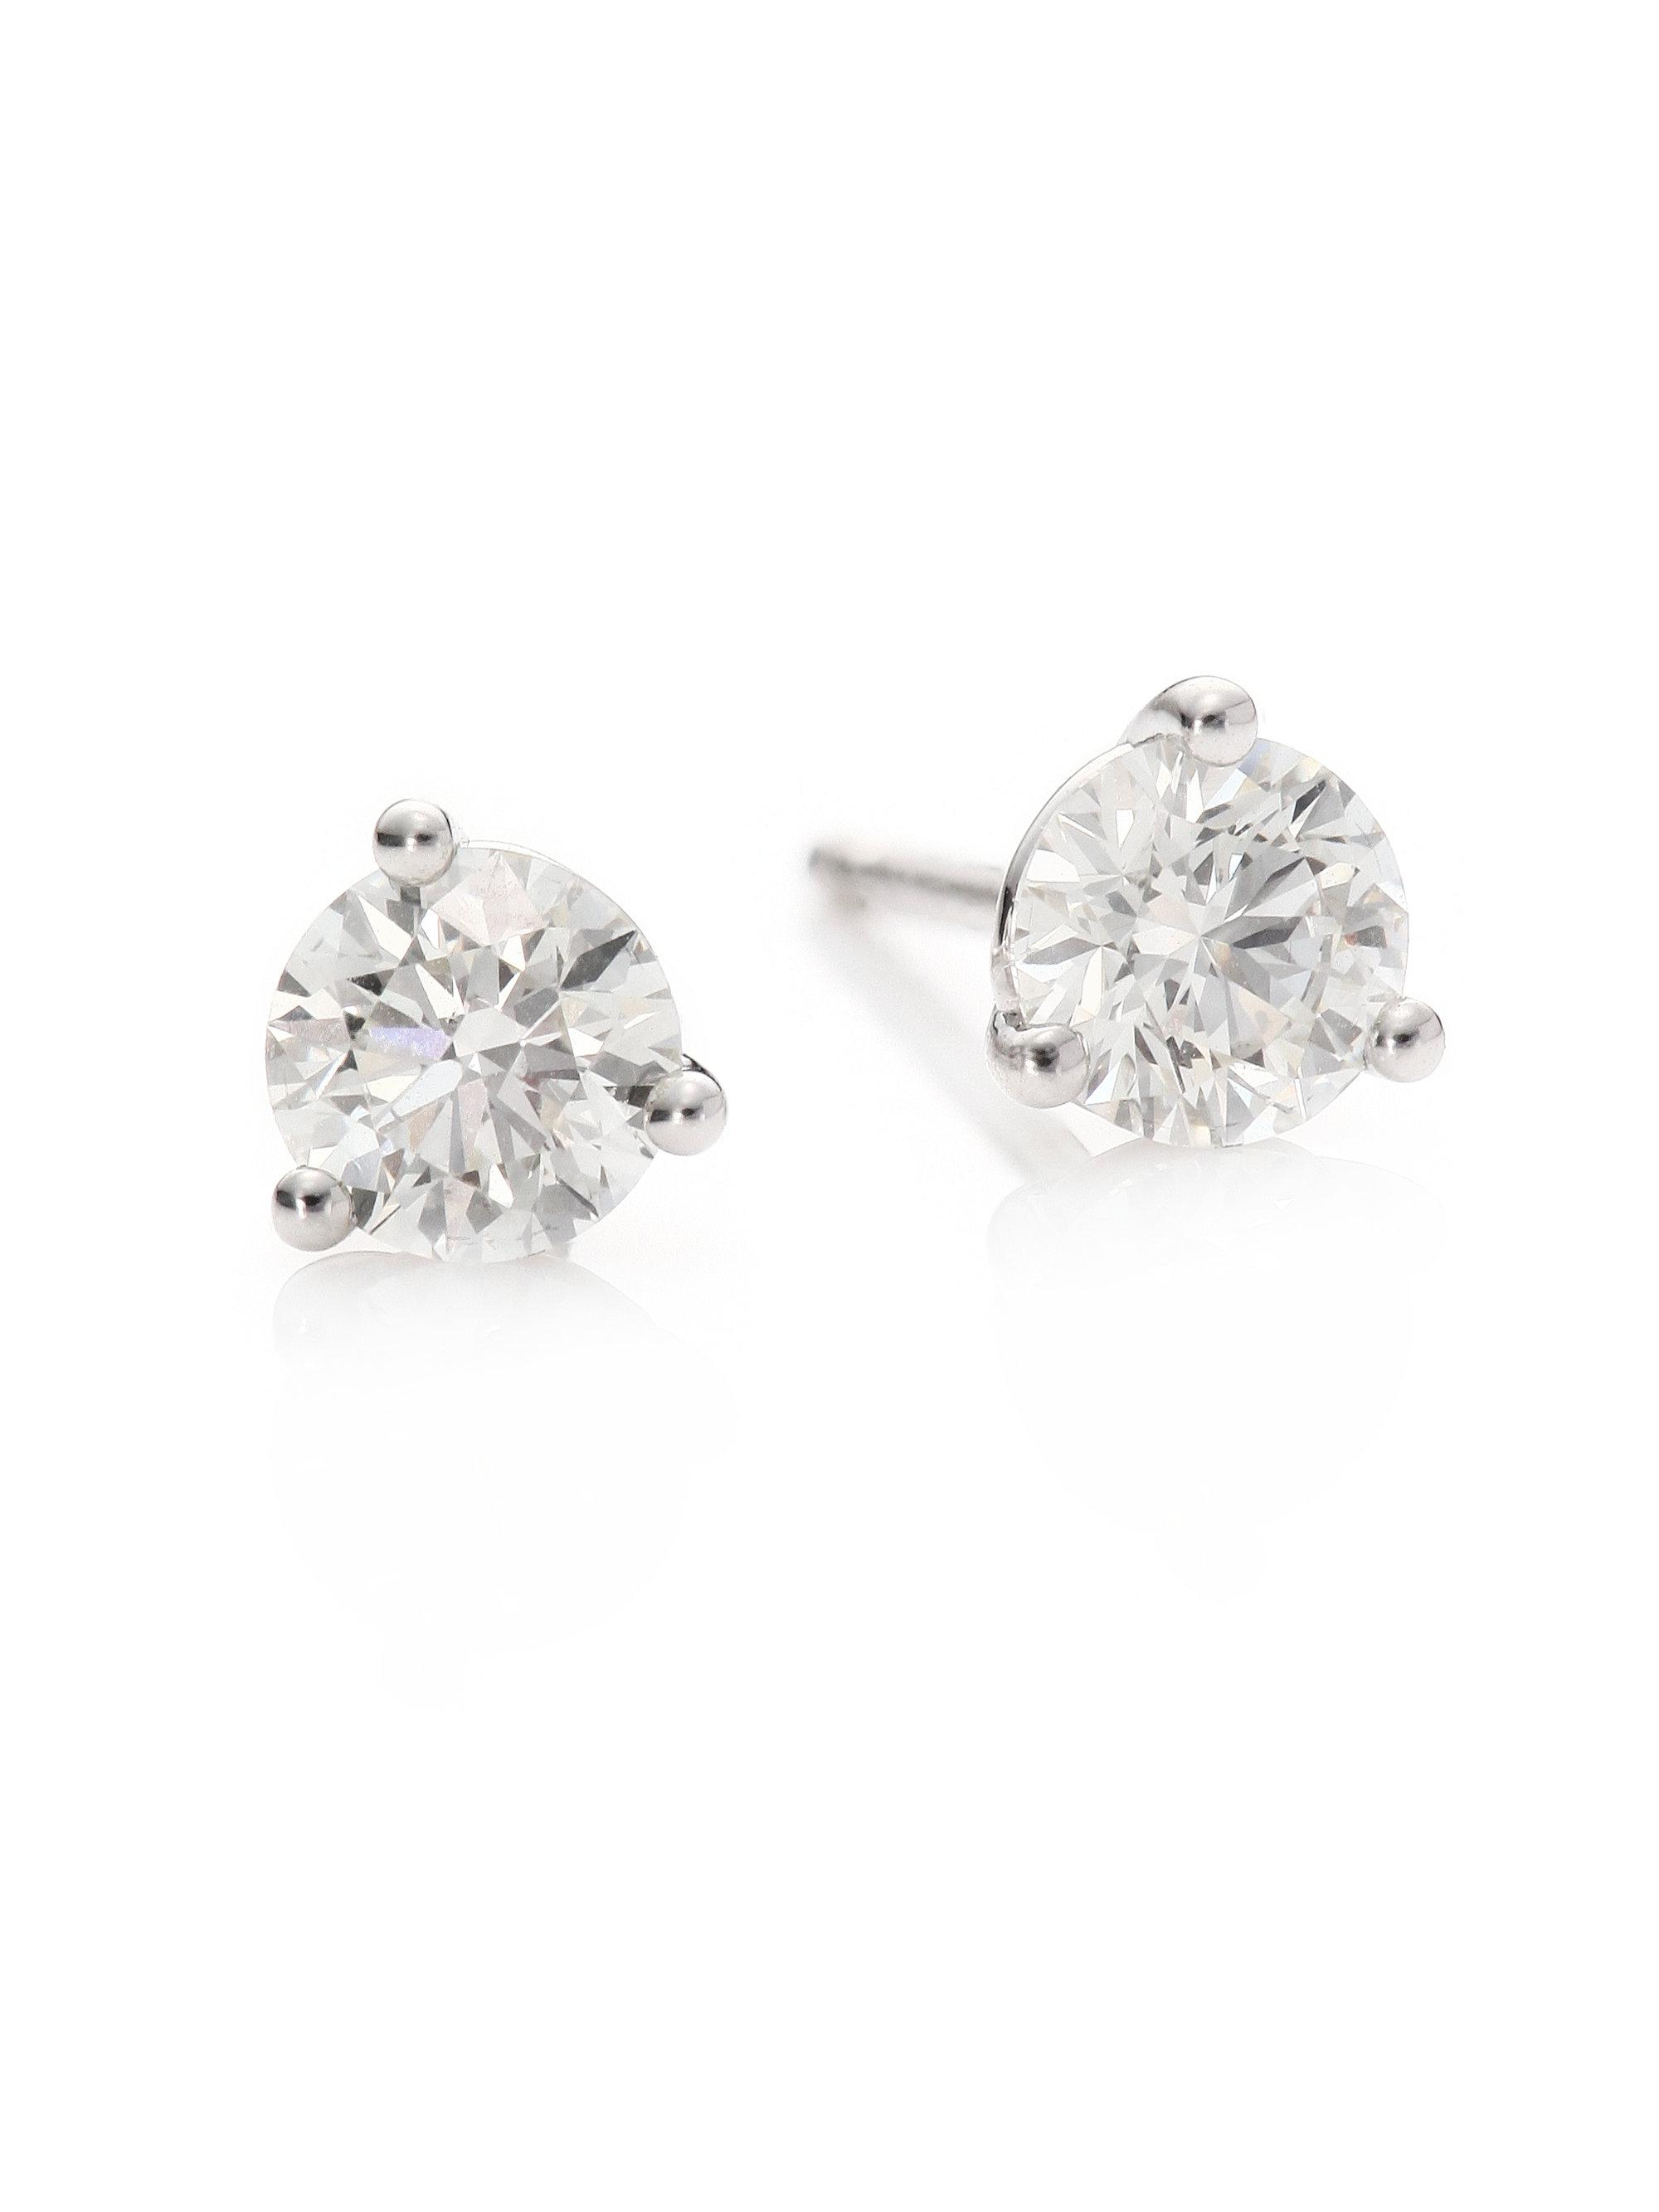 moissanite earrings jewelry white on fire hearts prong diamond gold stud view fullscreen three lyst